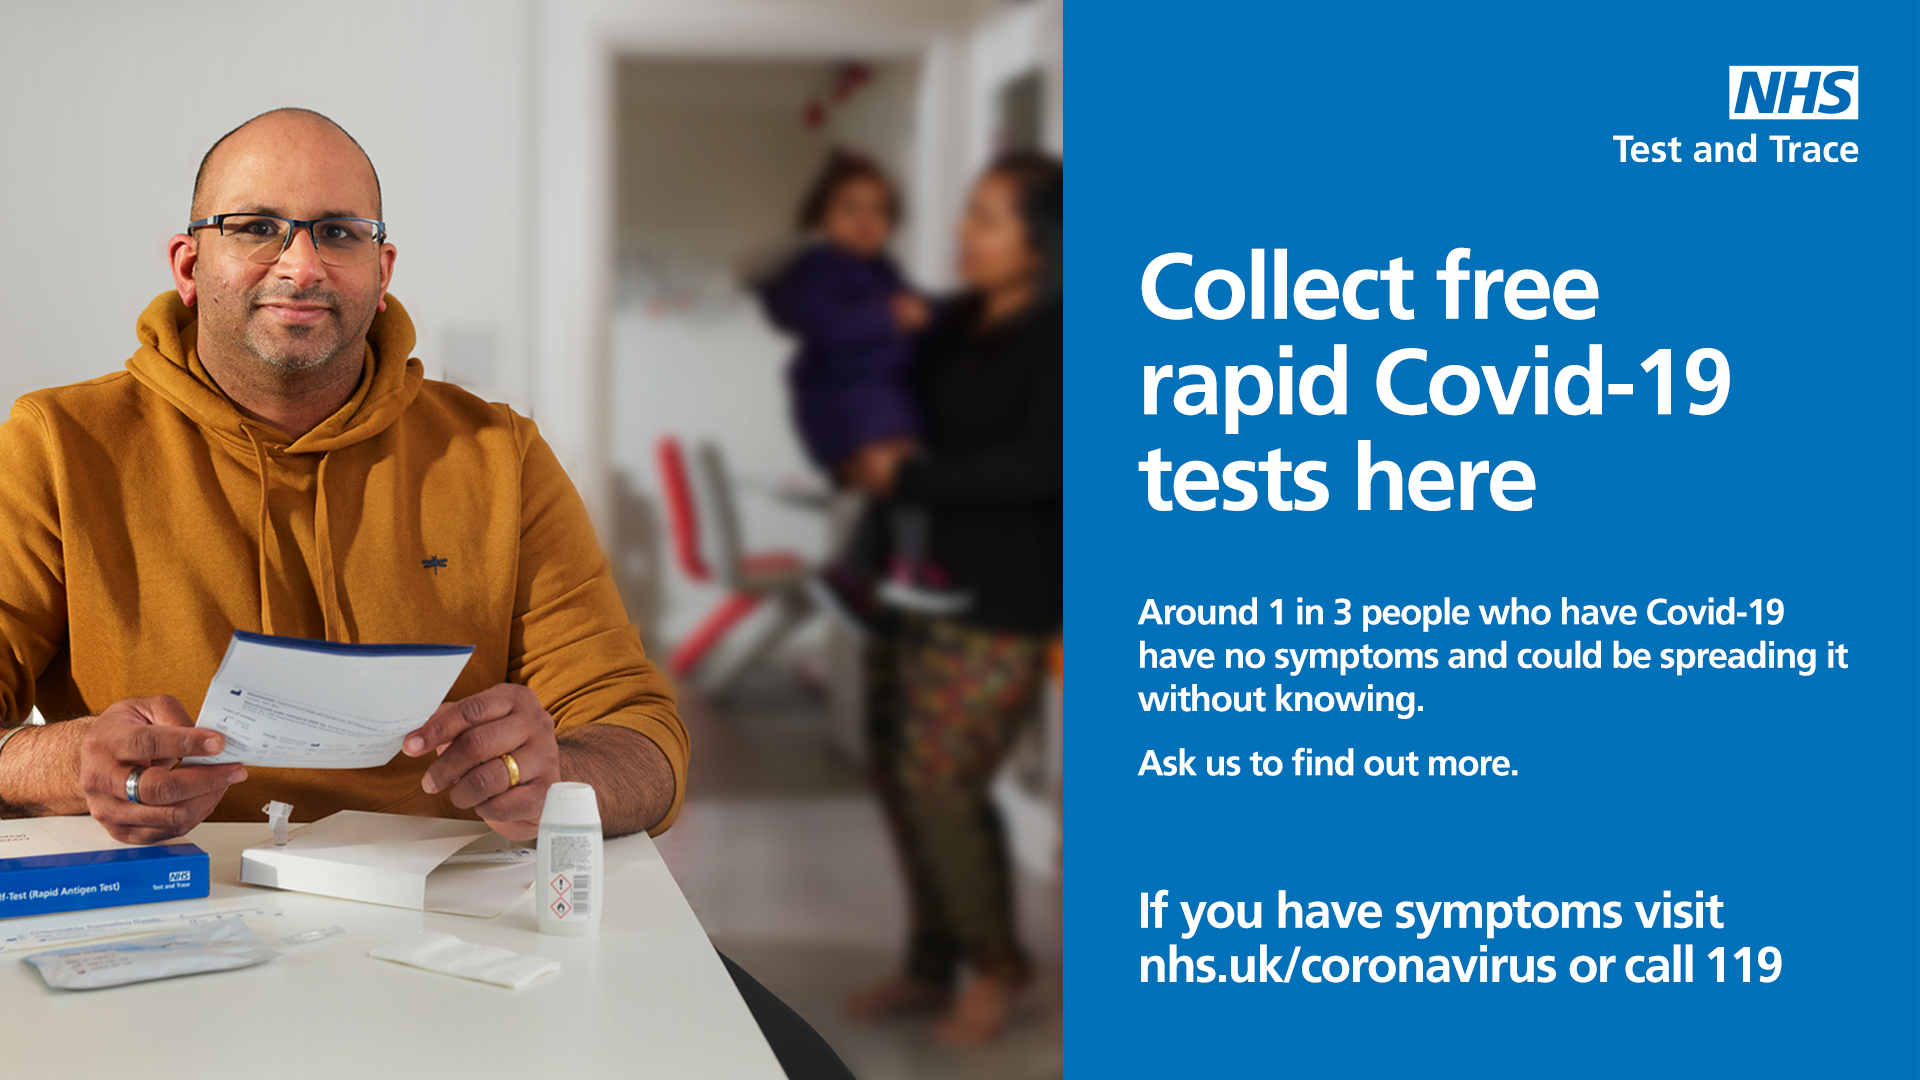 Collect free rapid Covid-19 tests here